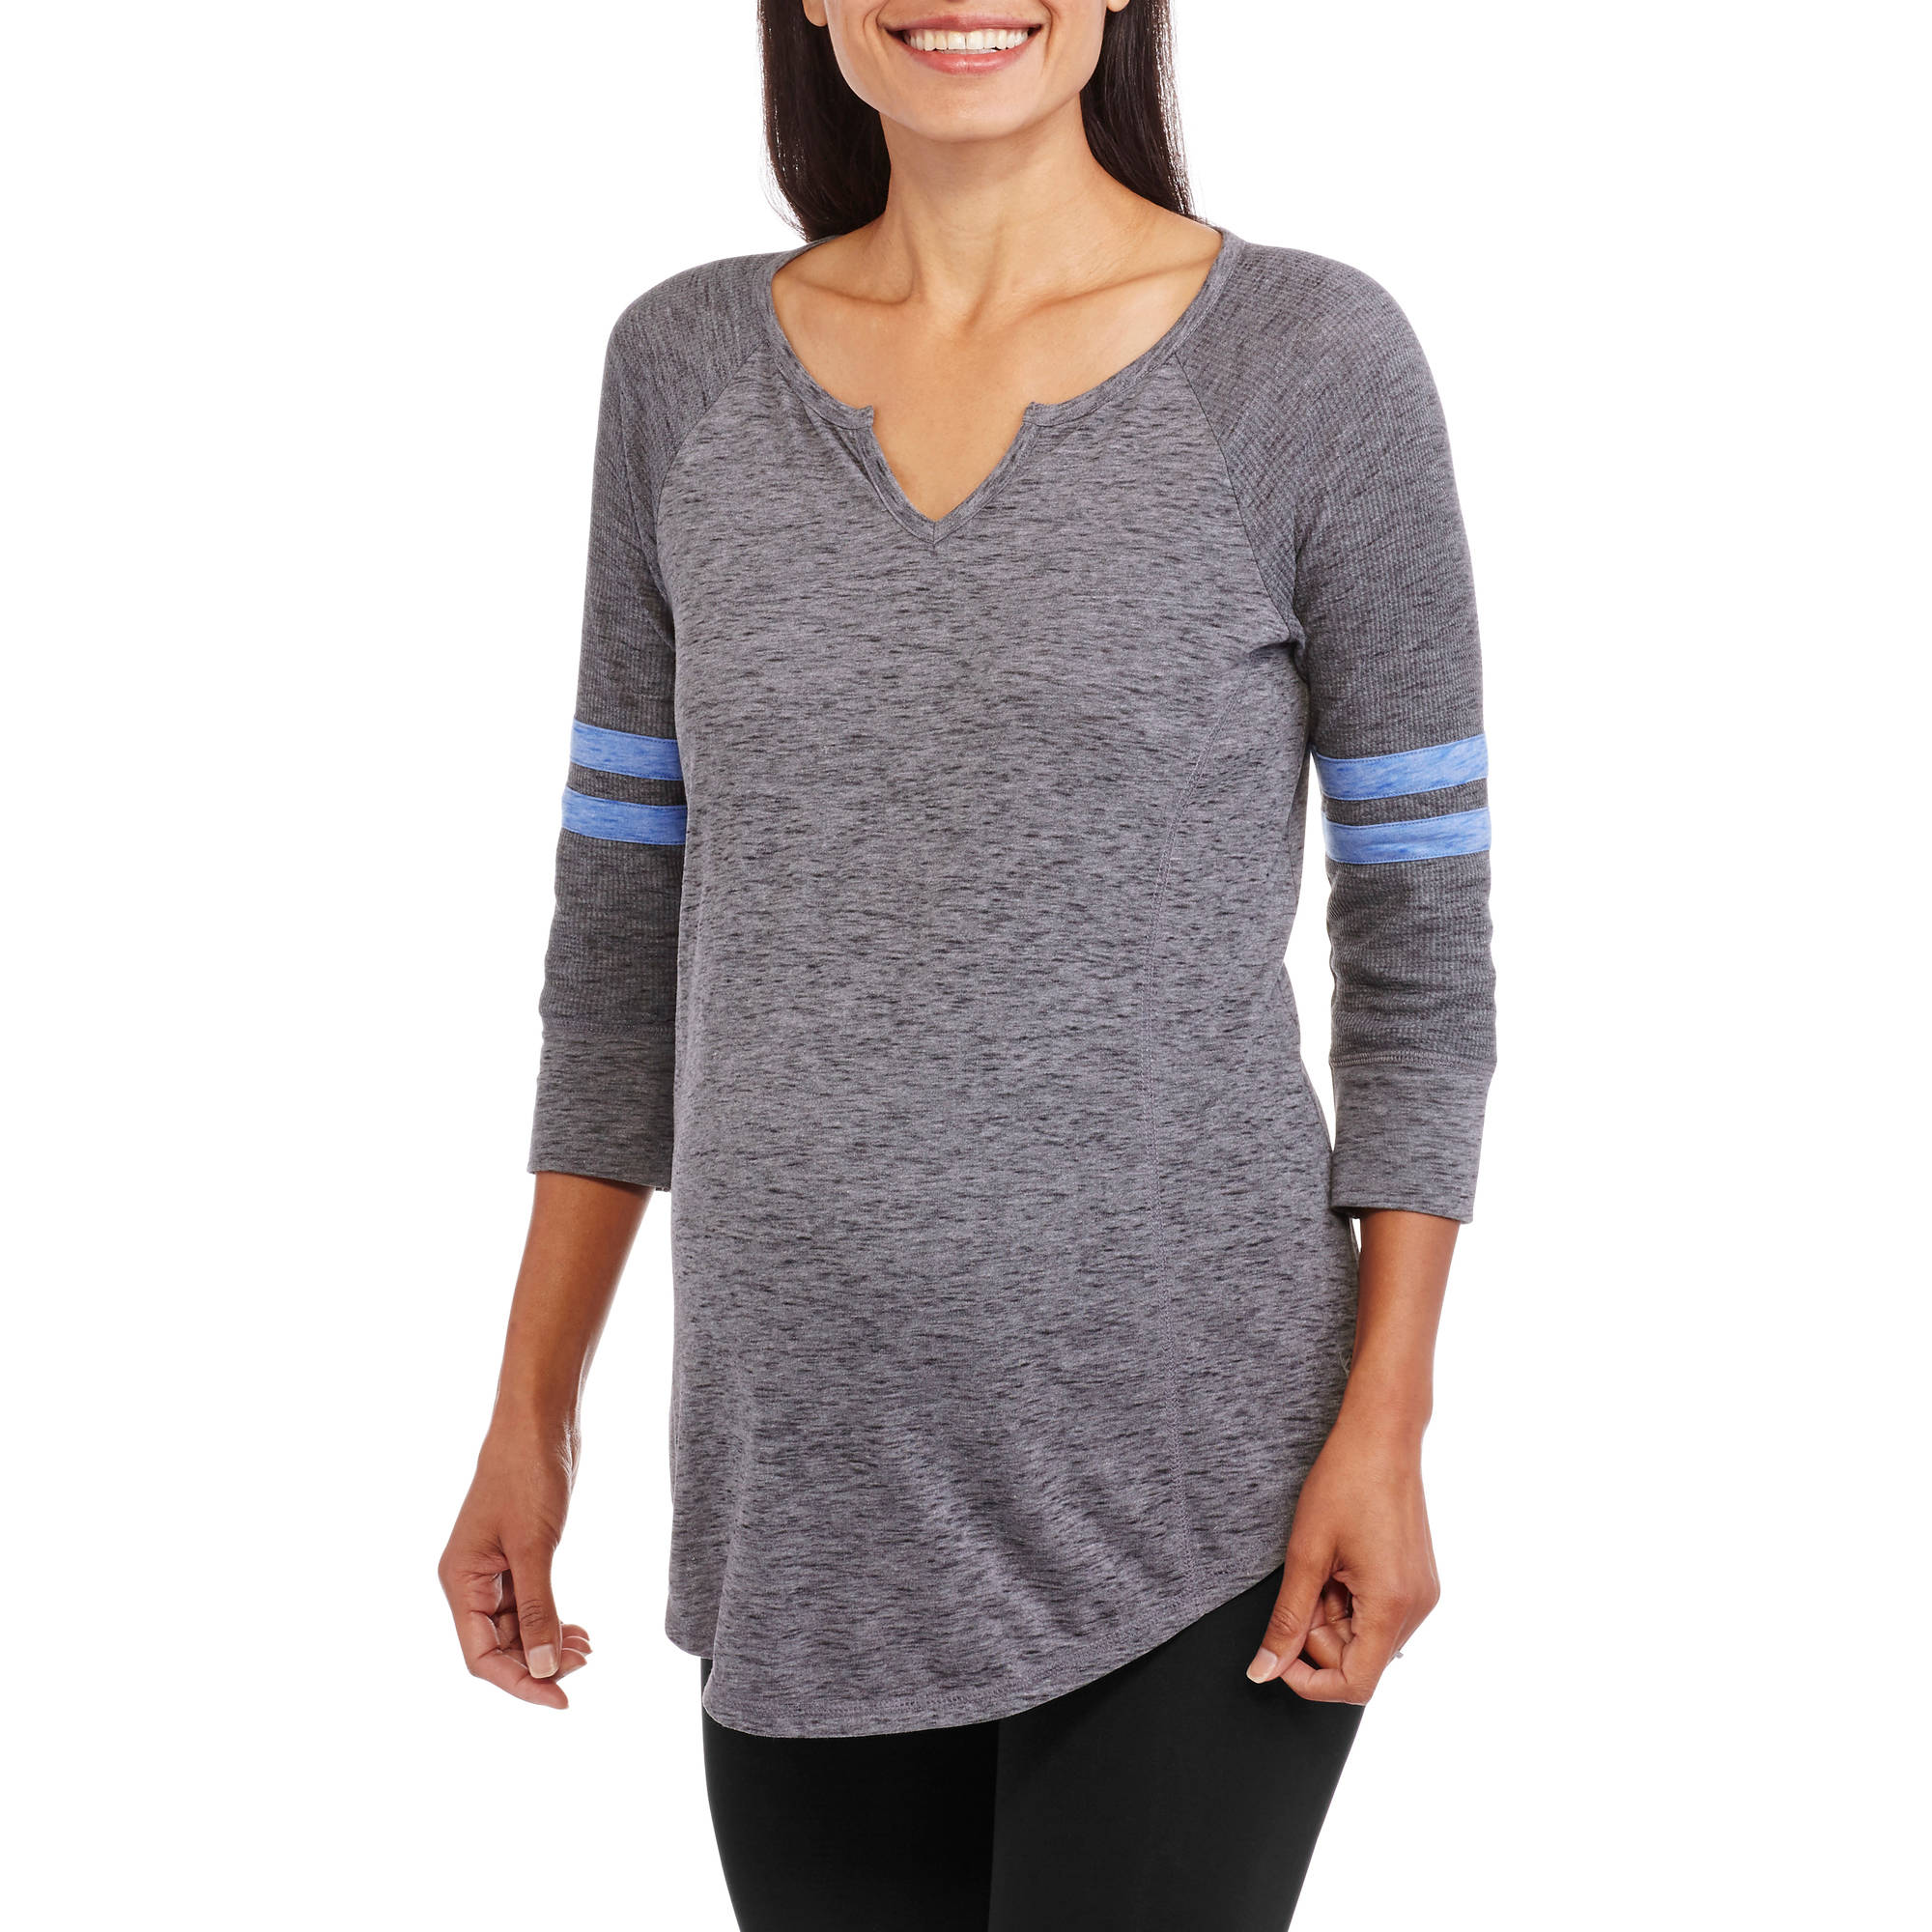 Danskin Now Maternity Elbow Sleeve Baseball Tee